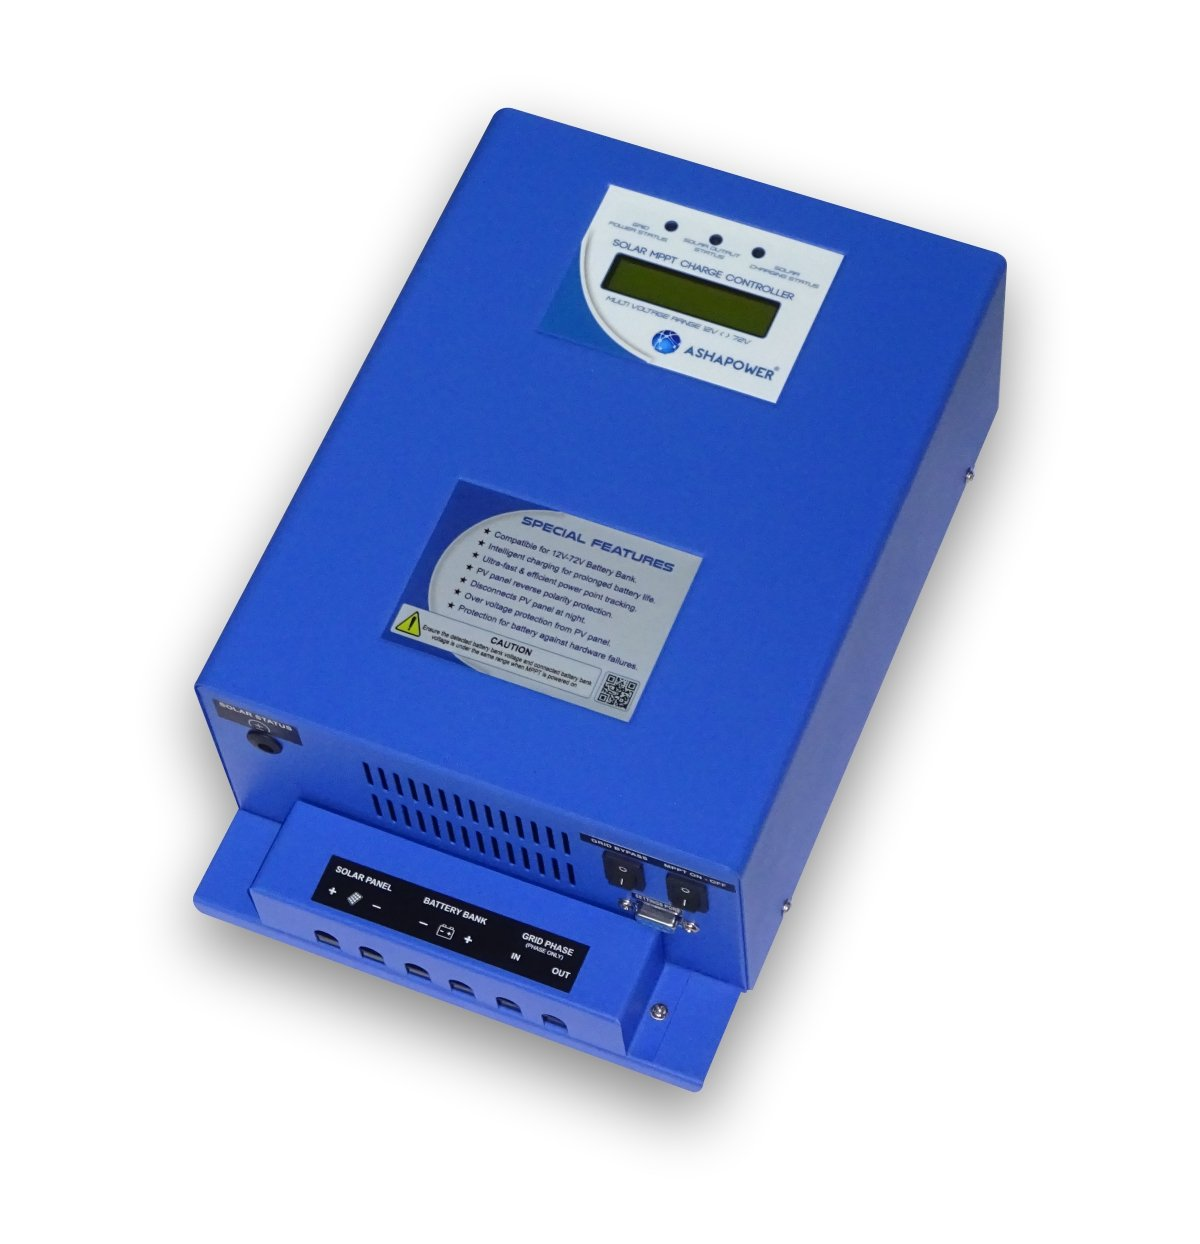 Ashapower Solar Mppt Charge Controller 24 36 48 60 72 V 40a Auto Visit Page Of Charger Circuit Setting Apollo 40 Blue Garden Outdoors